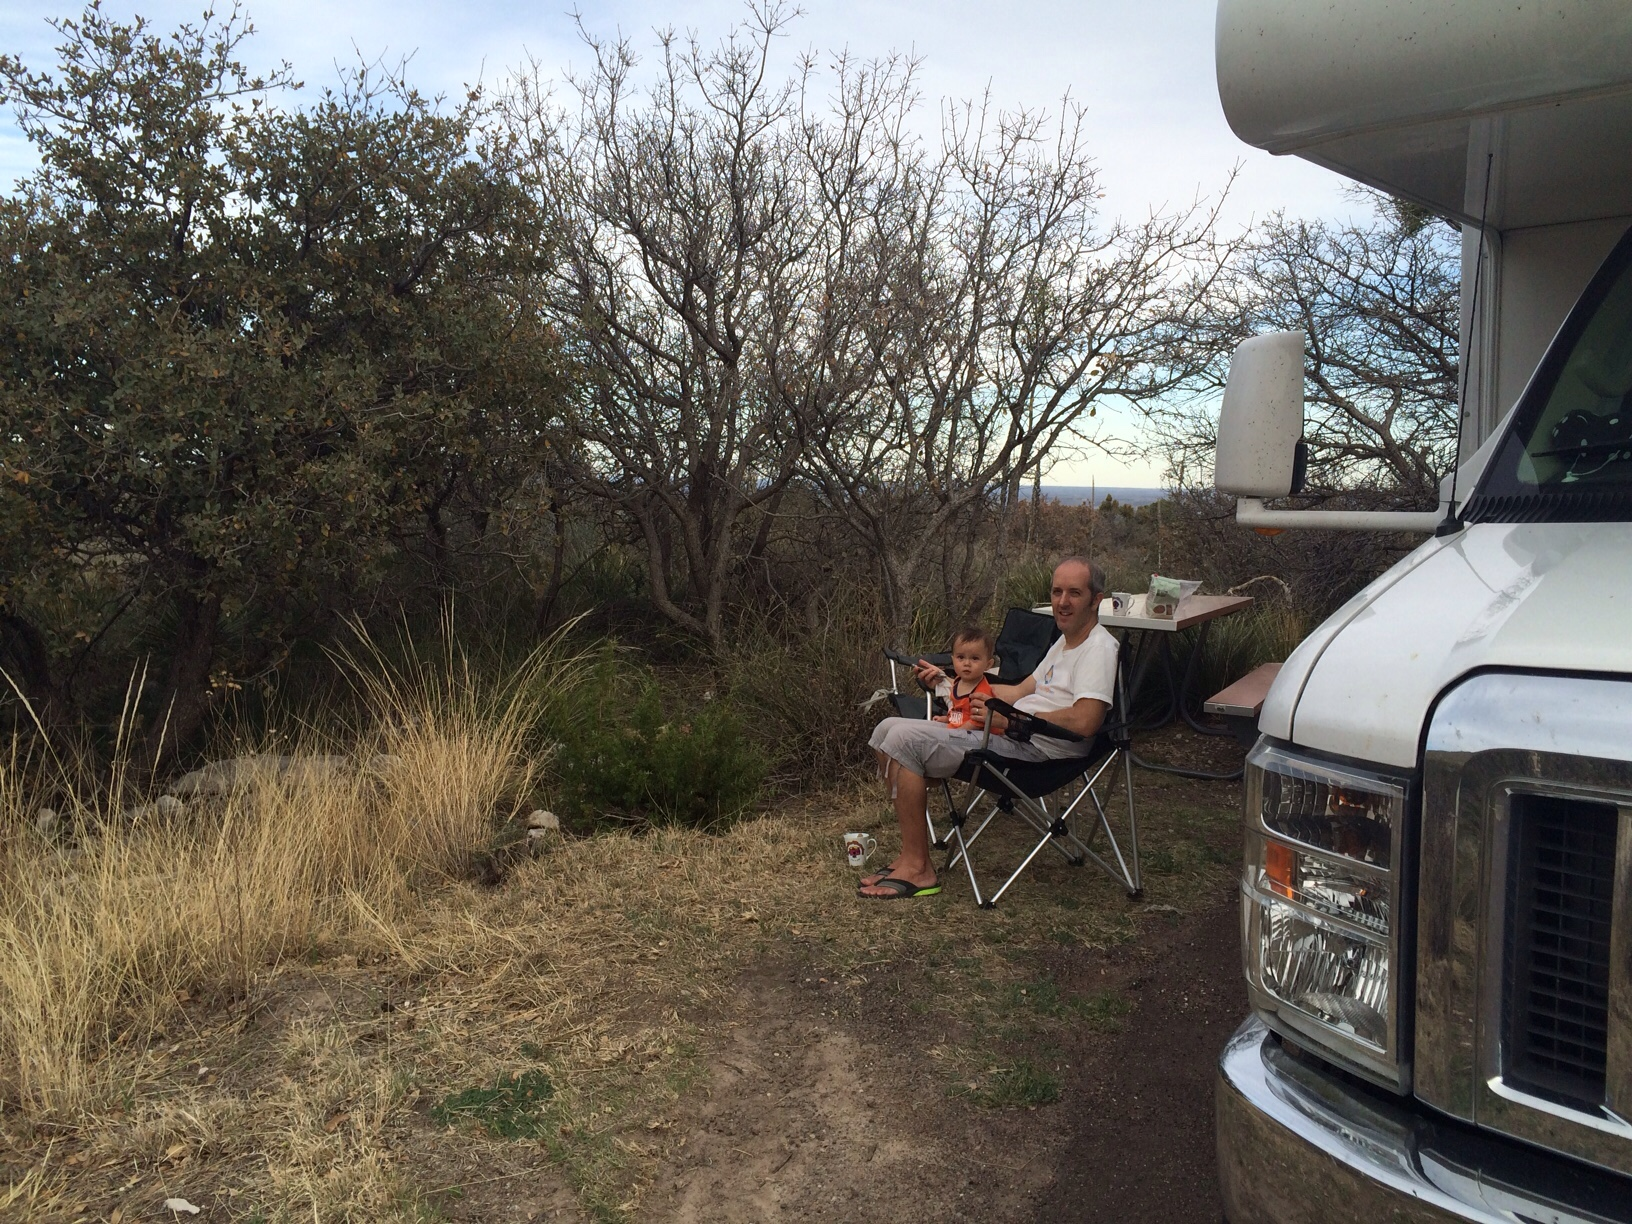 Baby boy o and dad sitting in camping chair outside RV